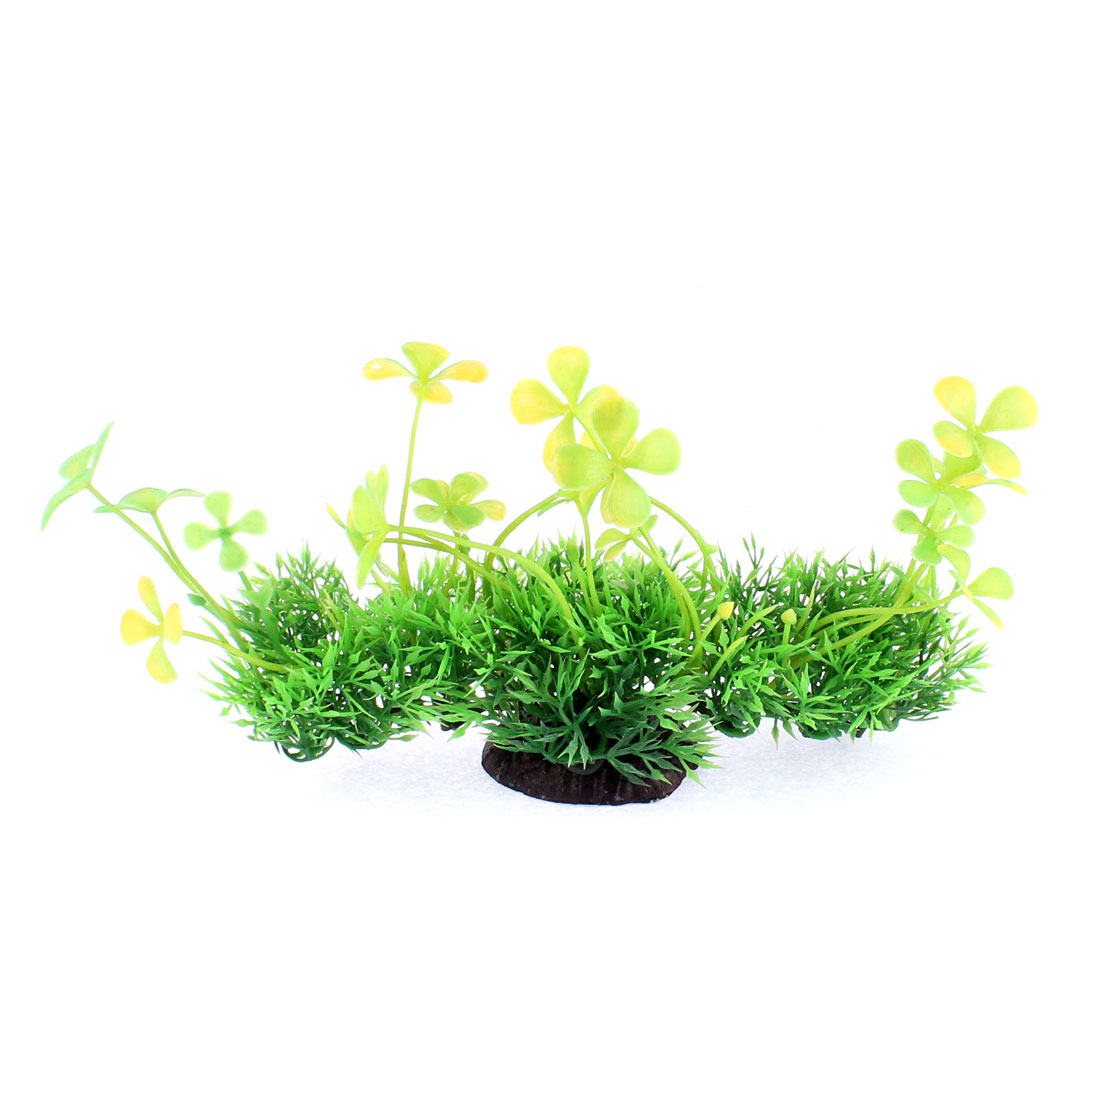 Aquarium Fishbowl Plastic Artificial Water Plant Grass Embellishment Green